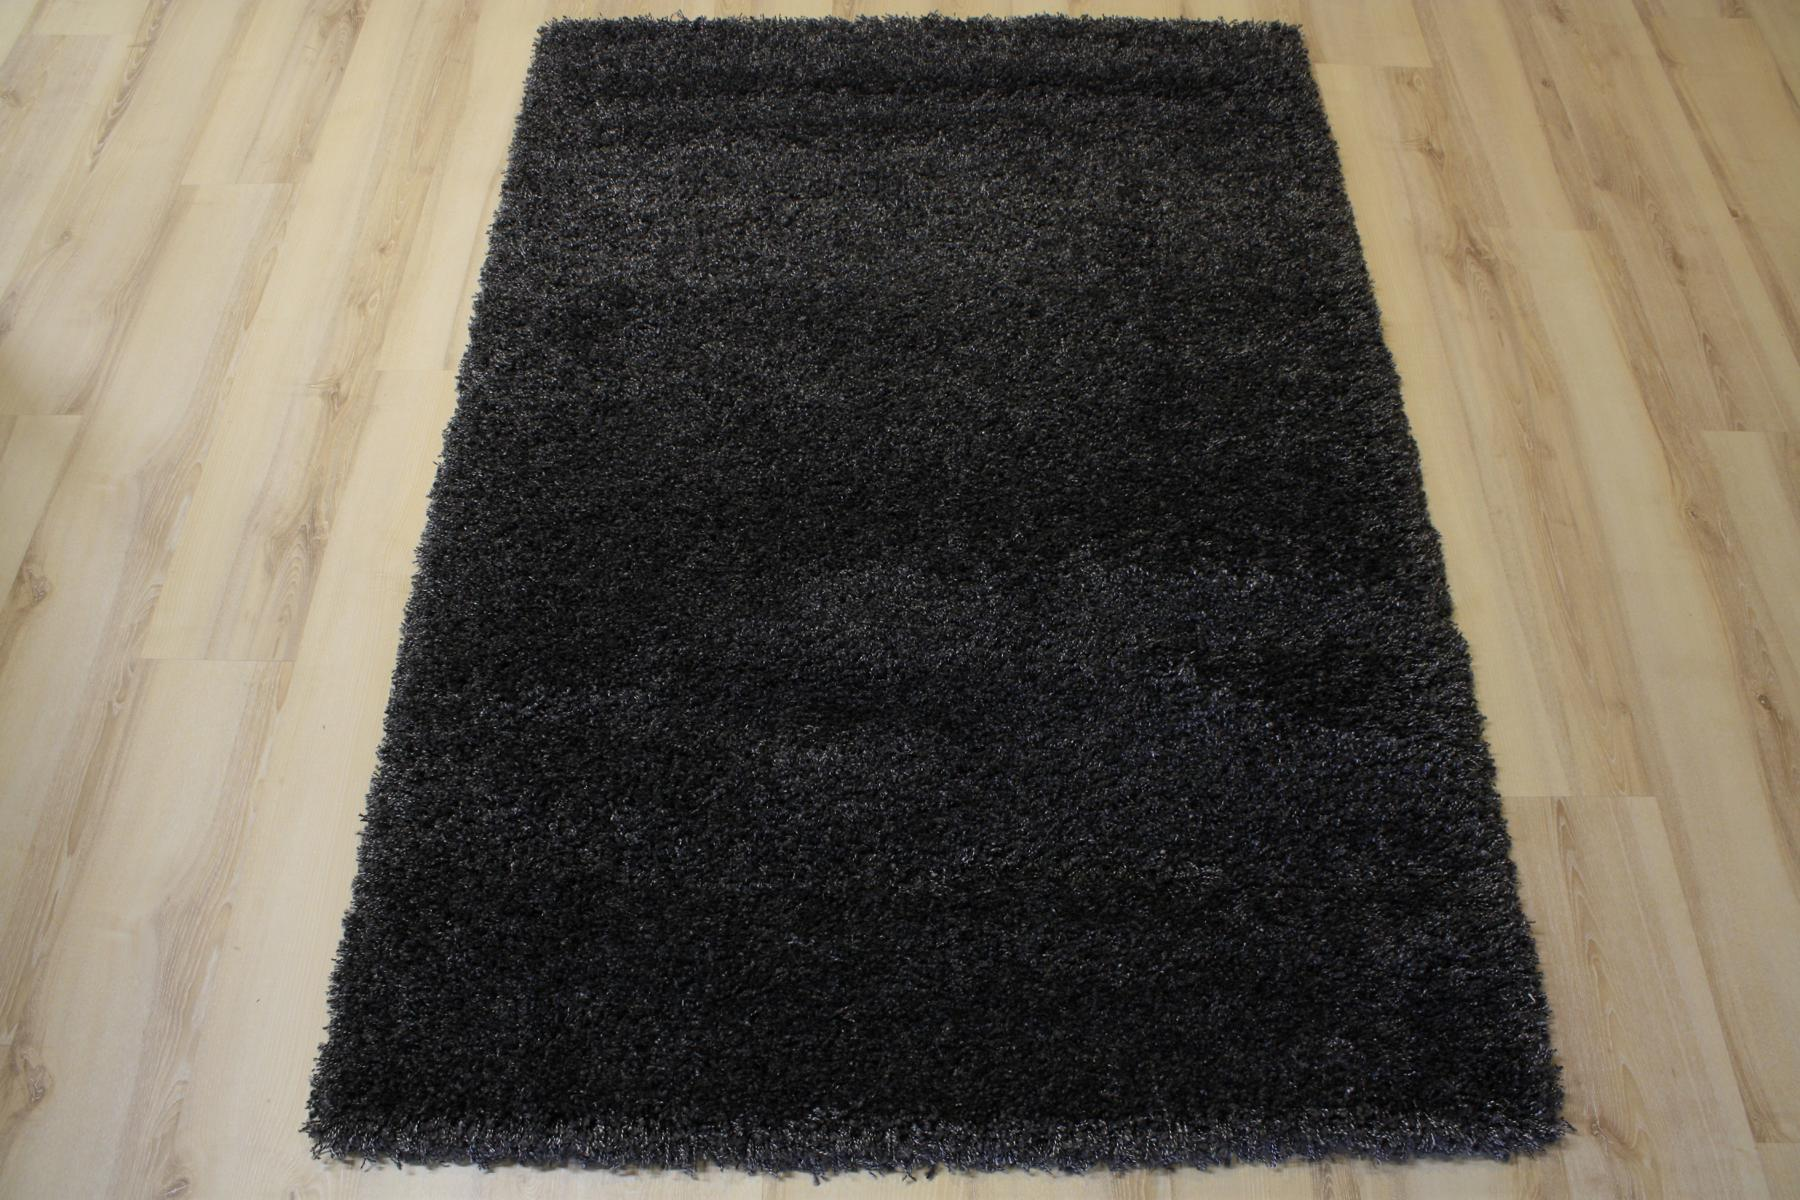 Rug High Pile 39001 Twilight 5533 Anthracite 65x130cm Ebay